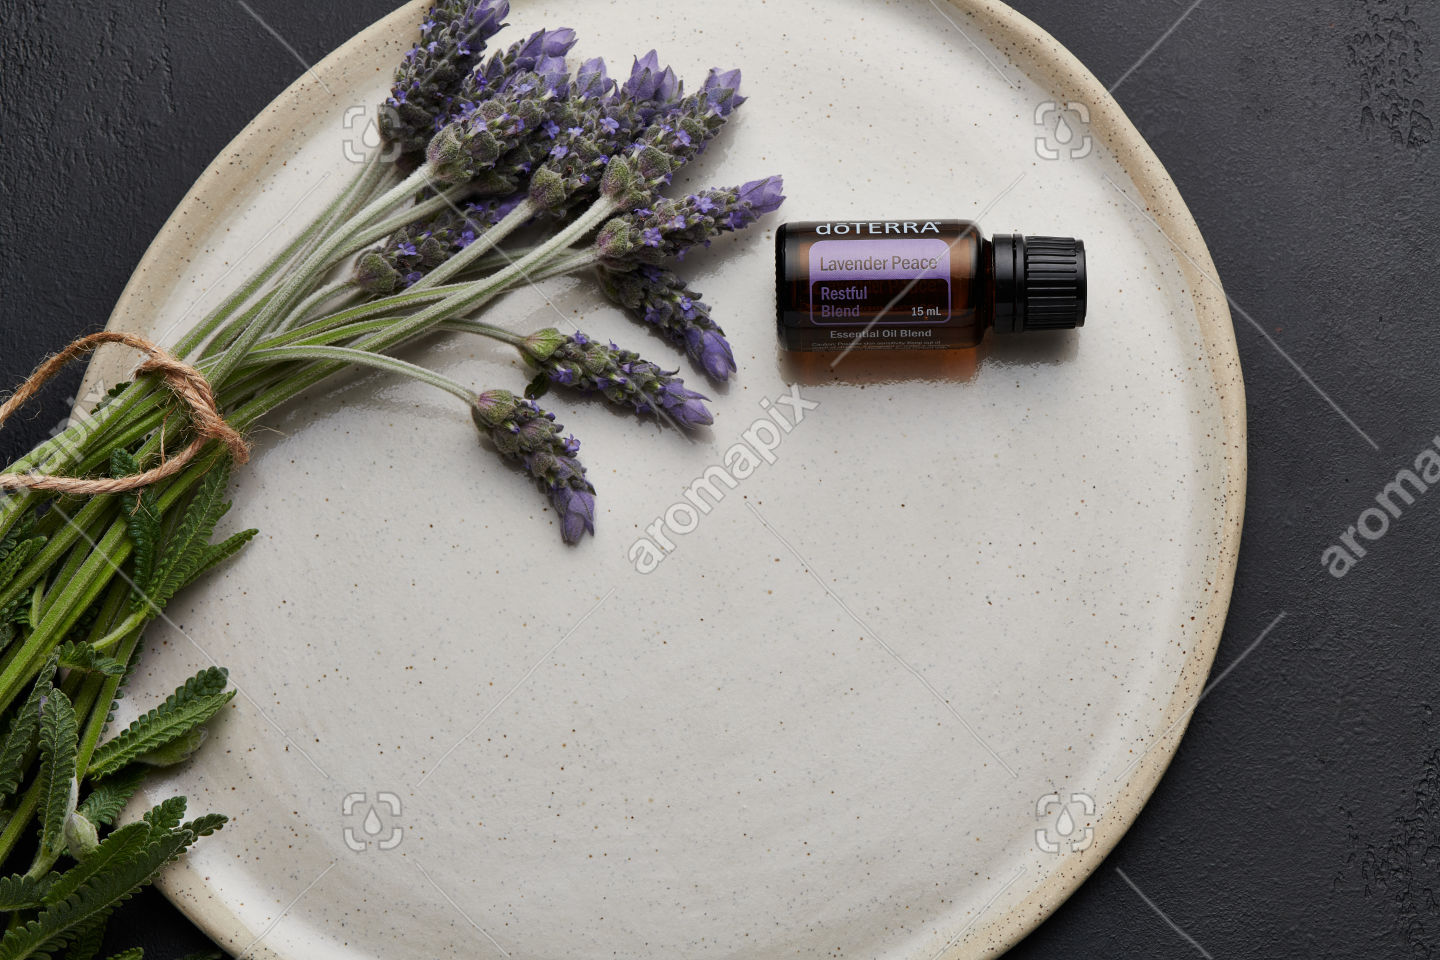 doTERRA Lavender Peace and lavender flowers on white ceramic plate with black background